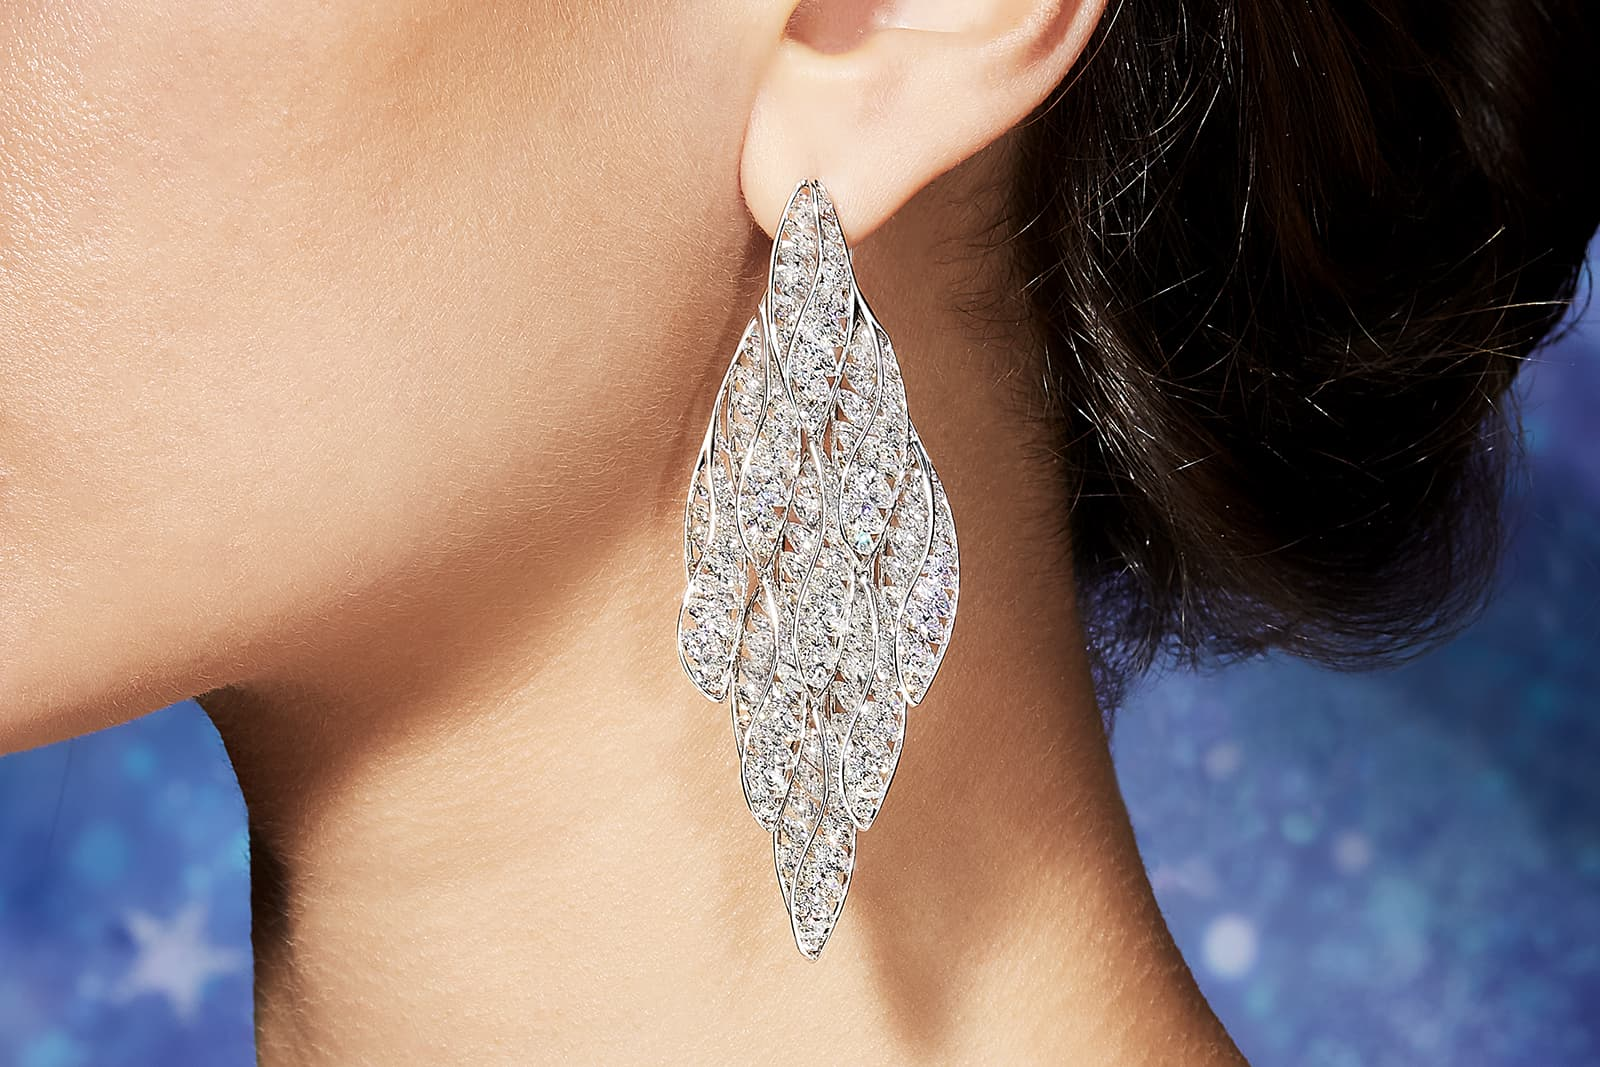 FORMS 'Helix' earrings with marquise diamonds in white gold